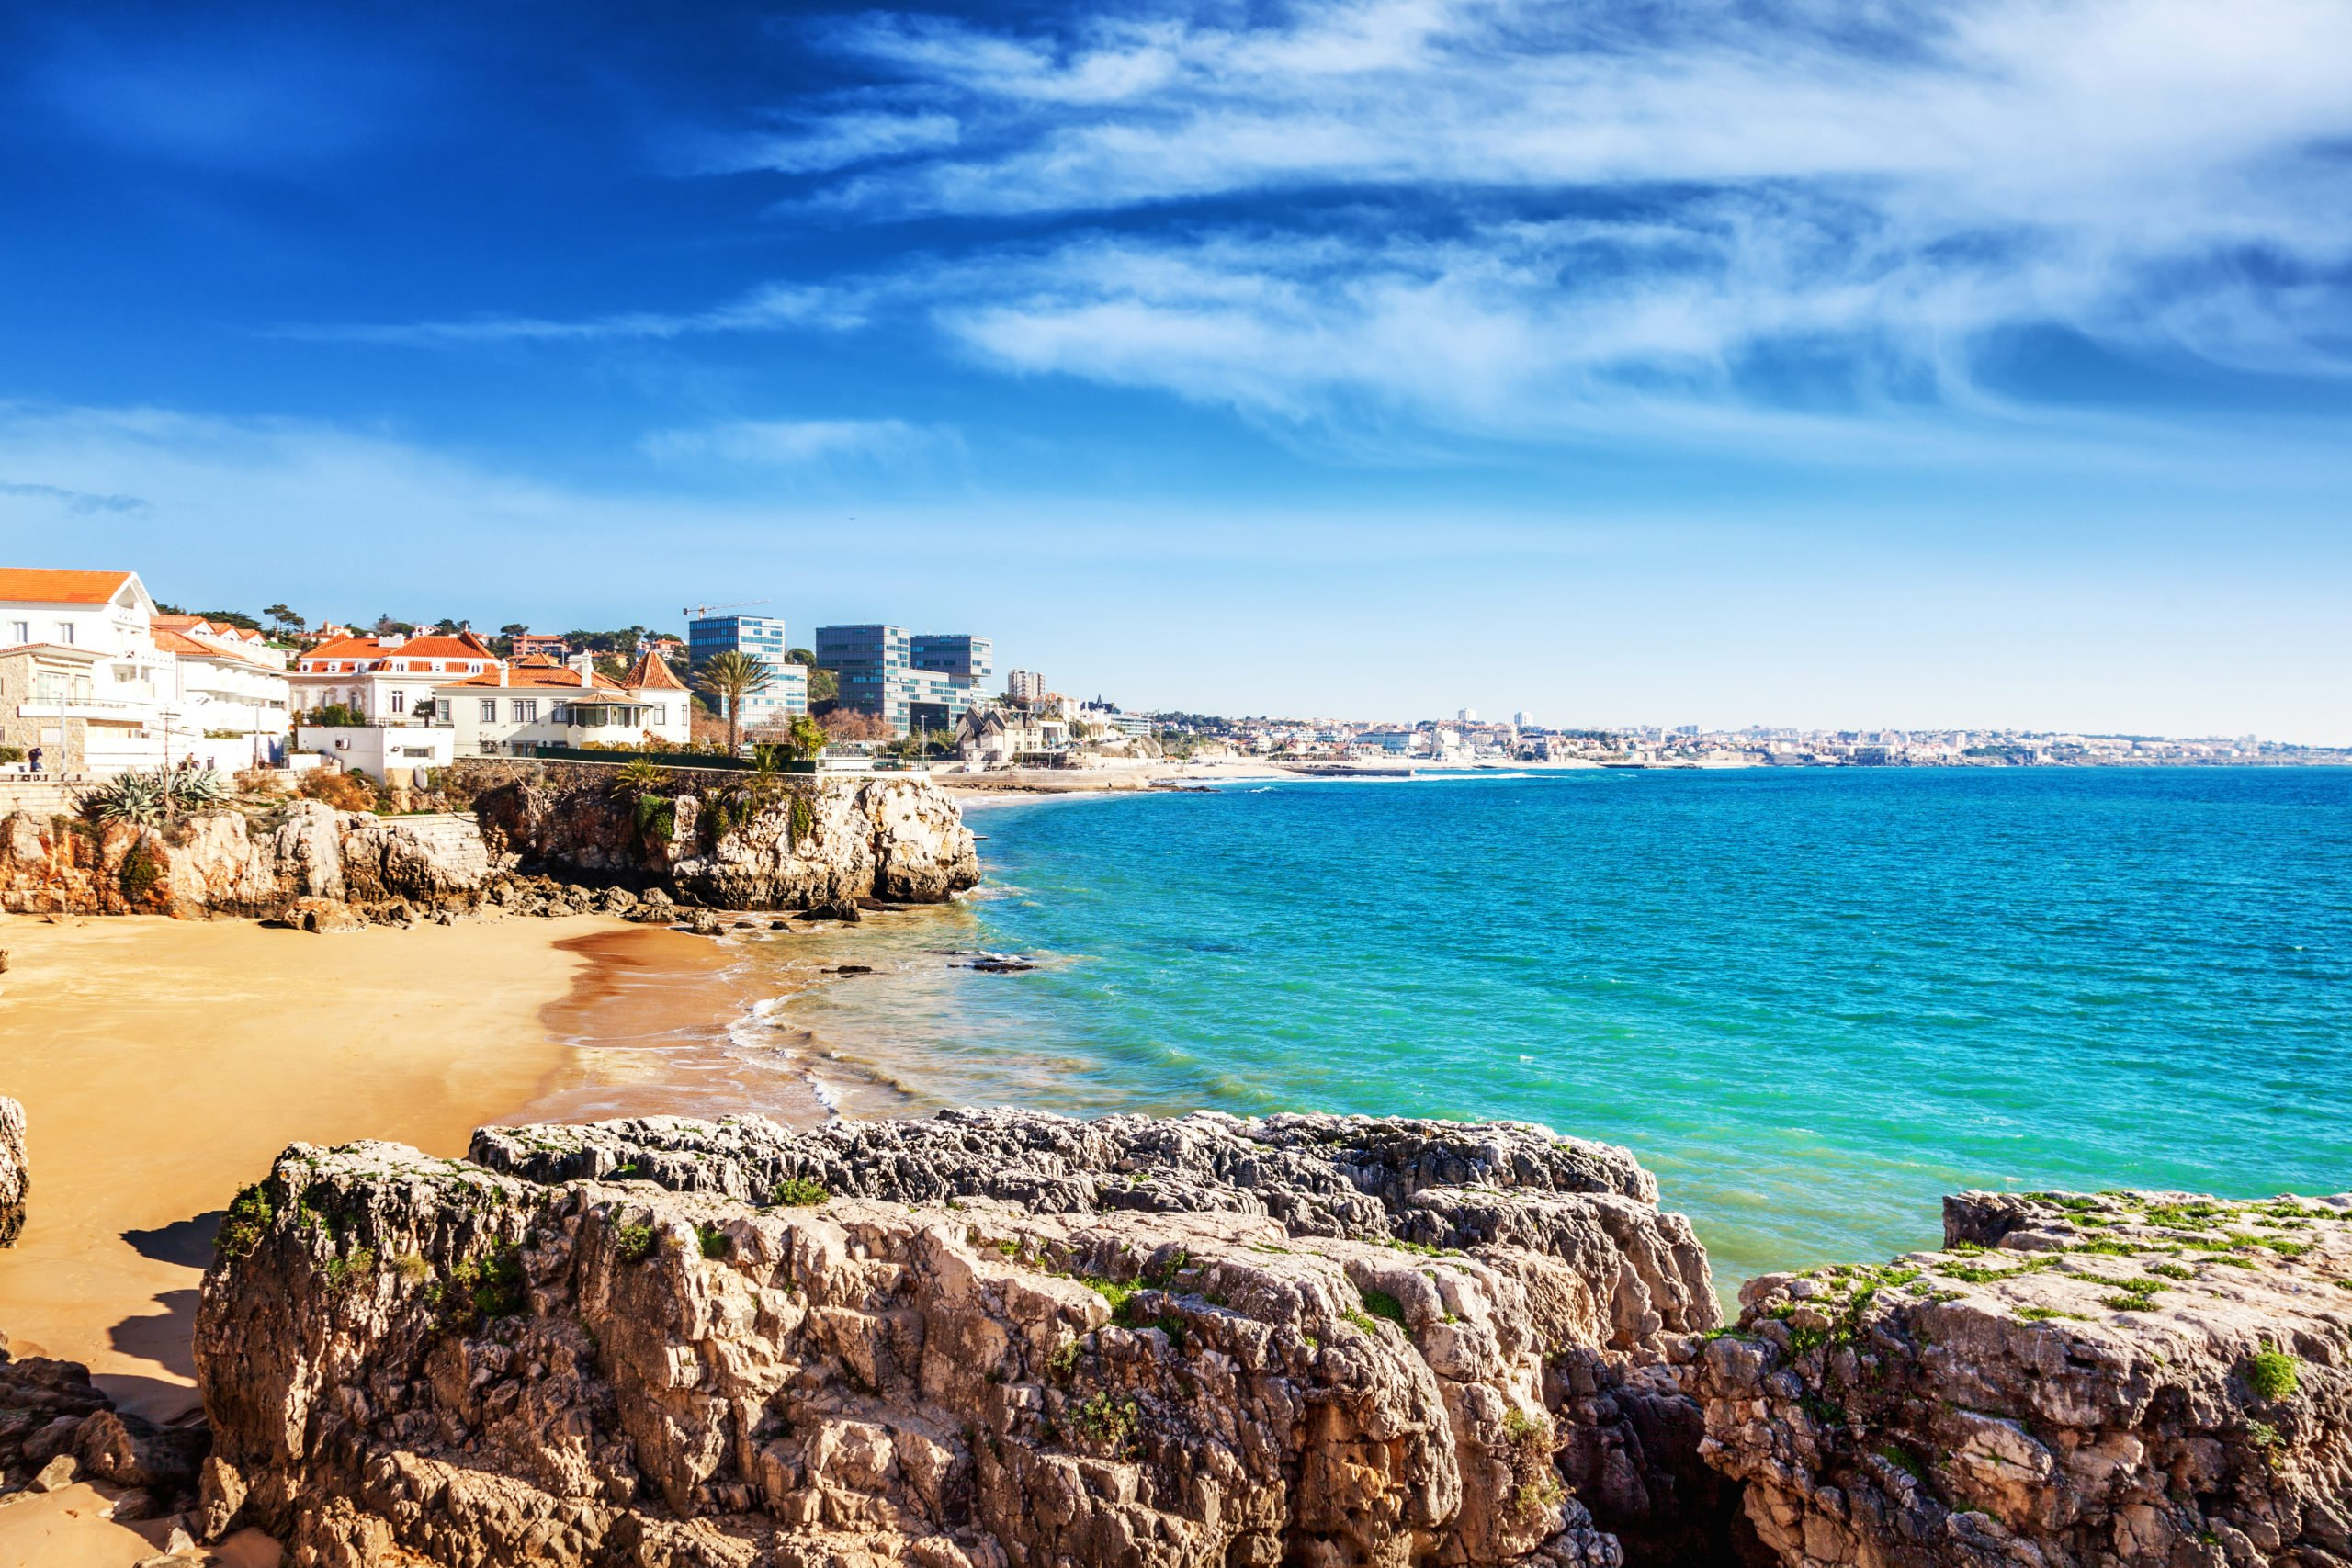 Take In The Marvelous Views Of The Coastline In Cascais On The Sintra, Pena Palace, Cascais & Estoril Half Day Tour From Lisbon